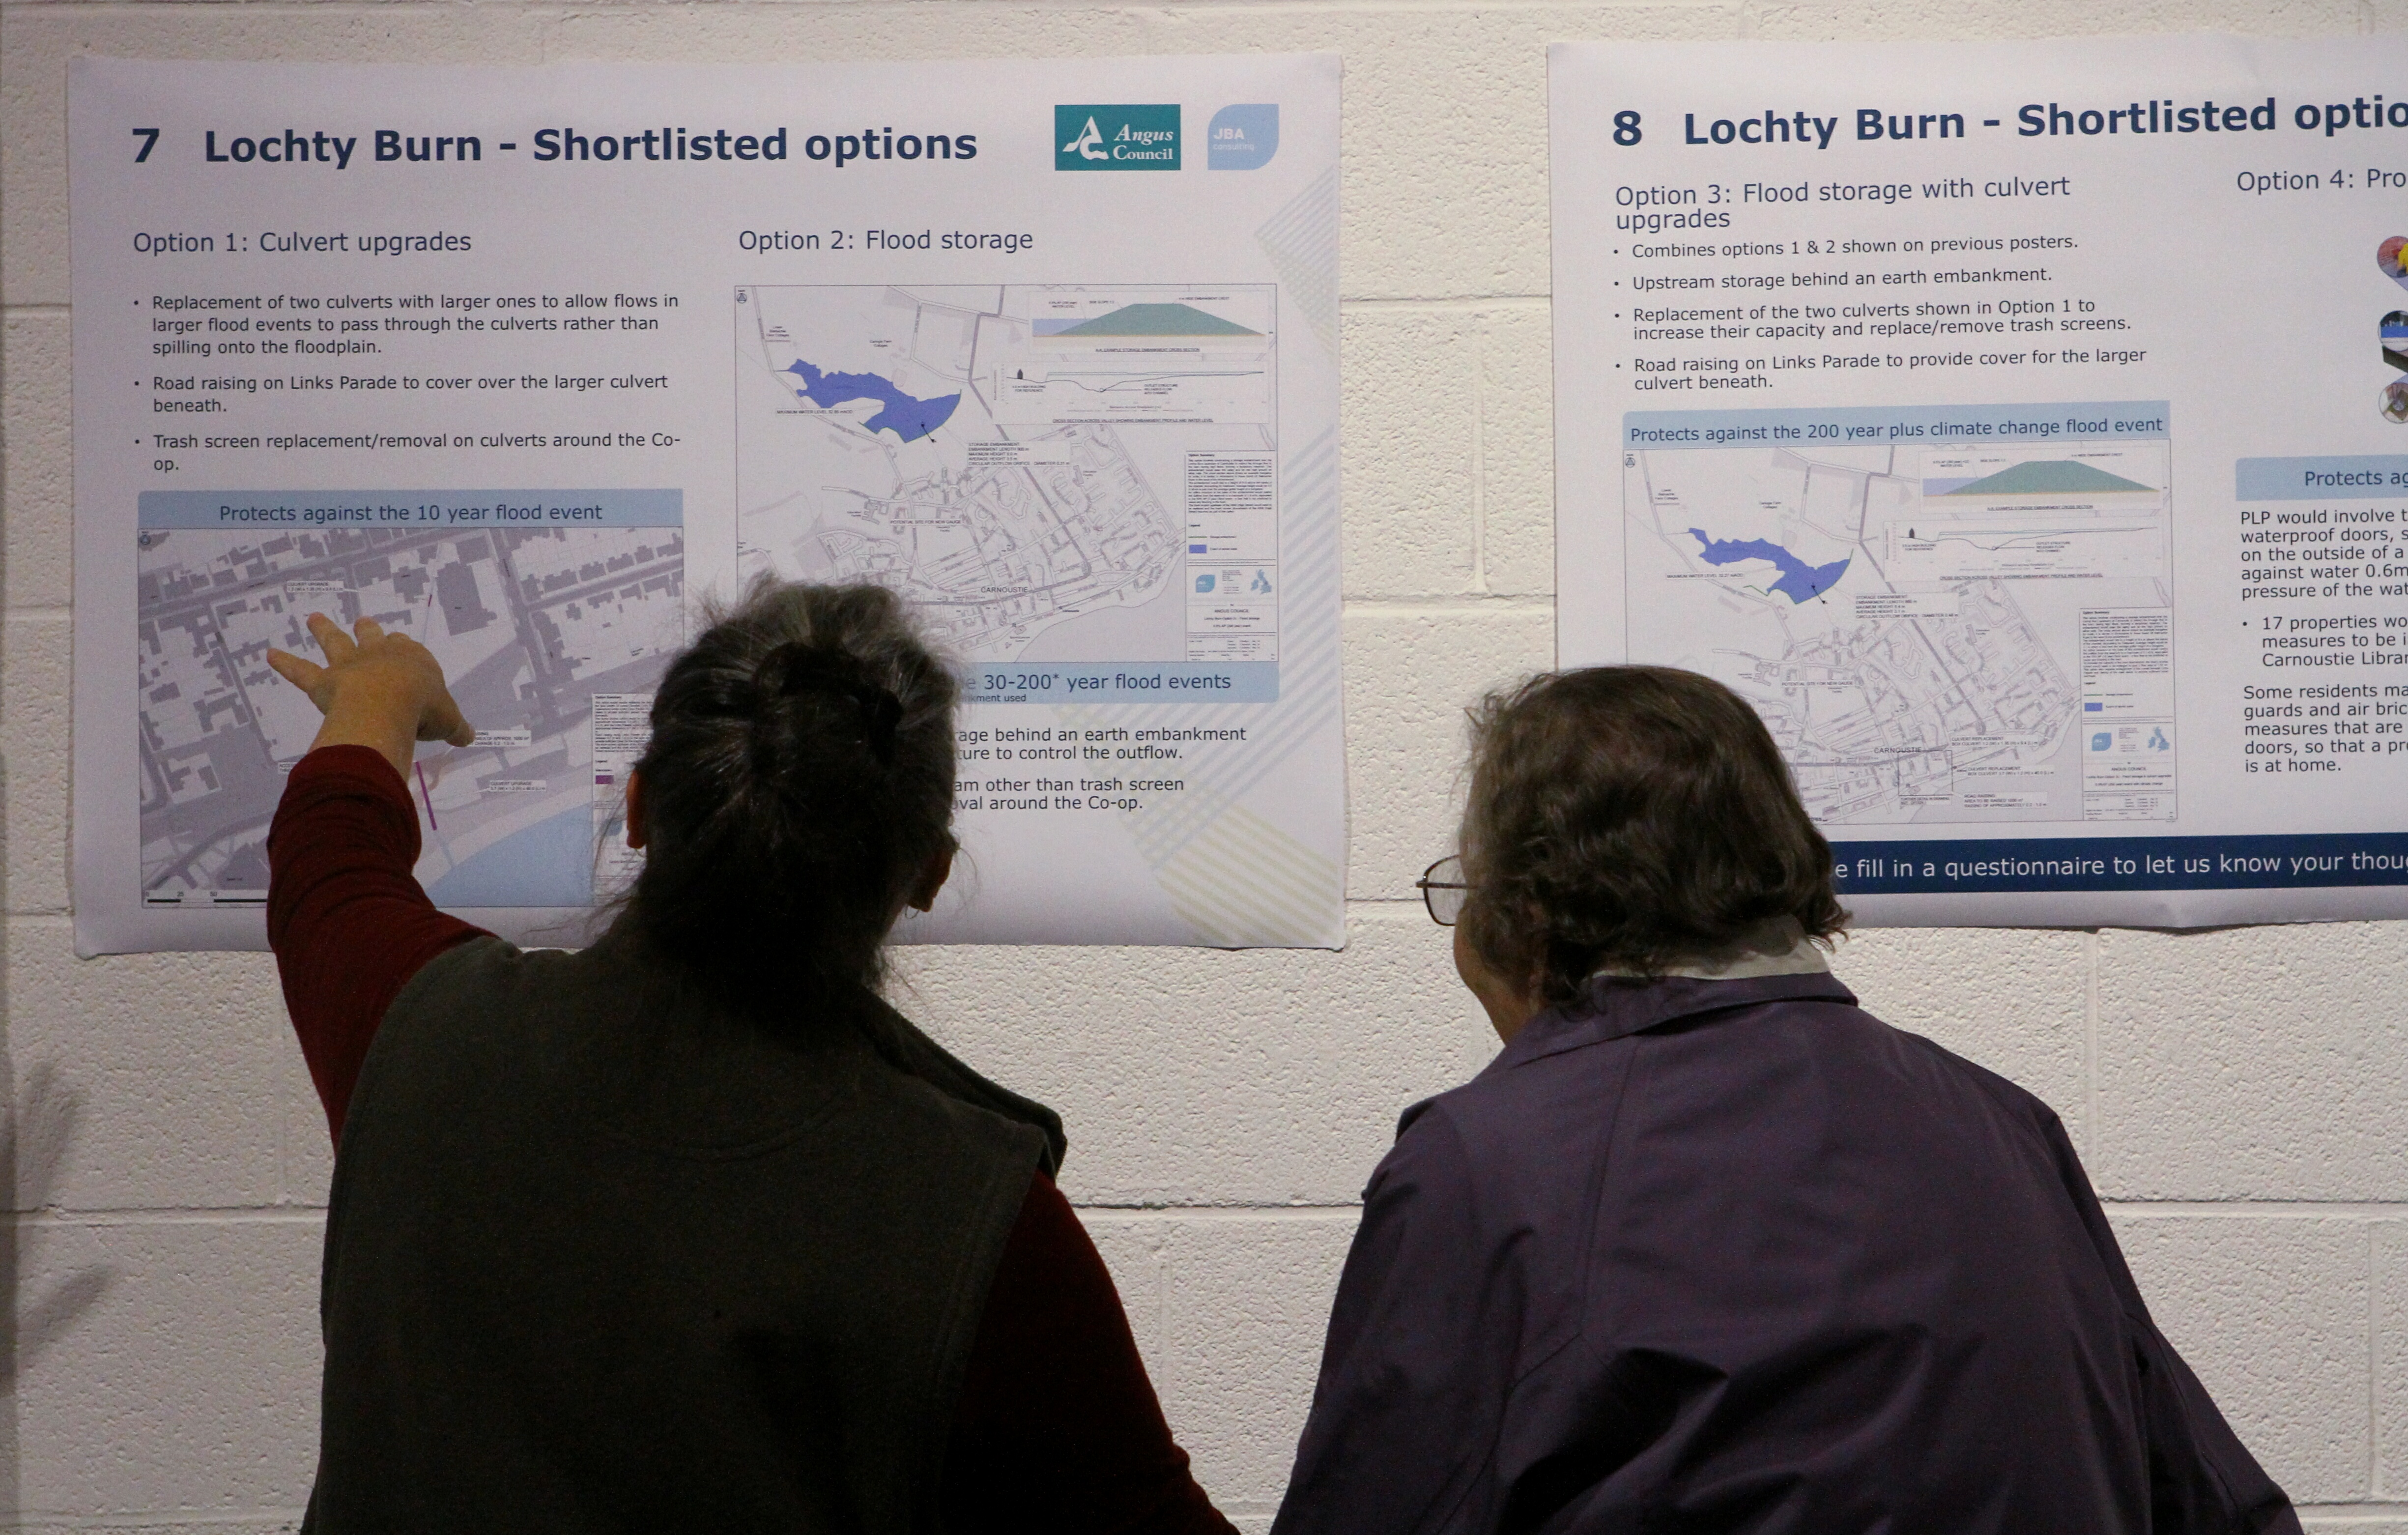 The flood study plans went on show in Carnoustie library.